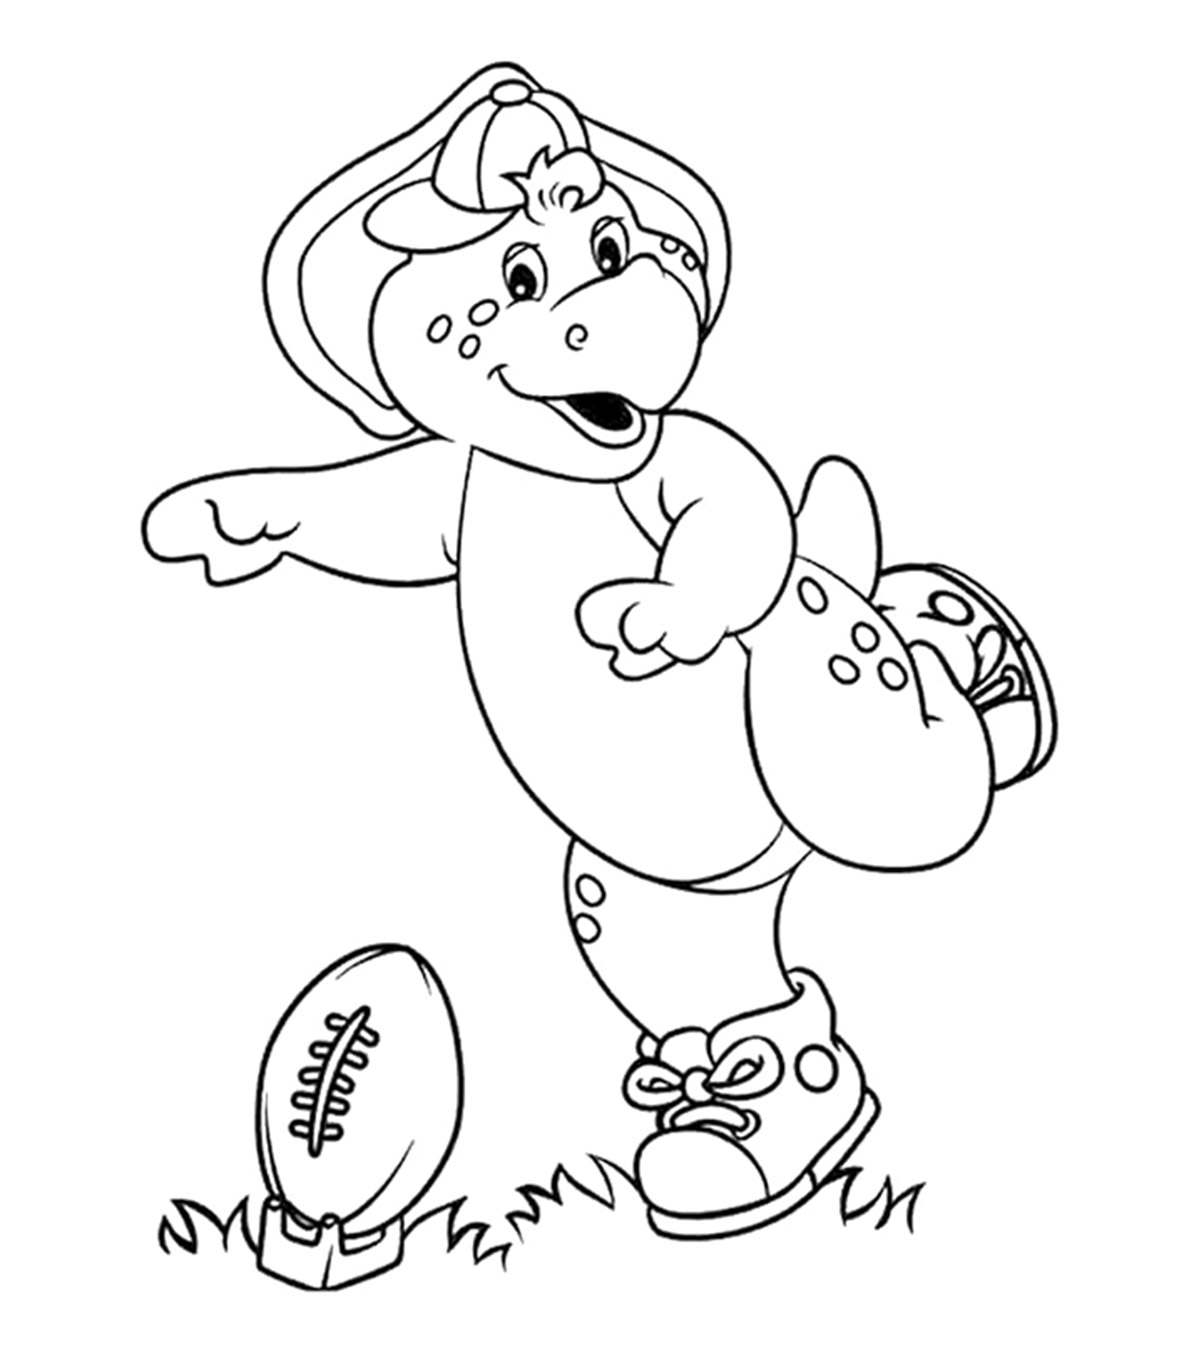 - Top 10 Free Printable Barney Coloring Pages Online